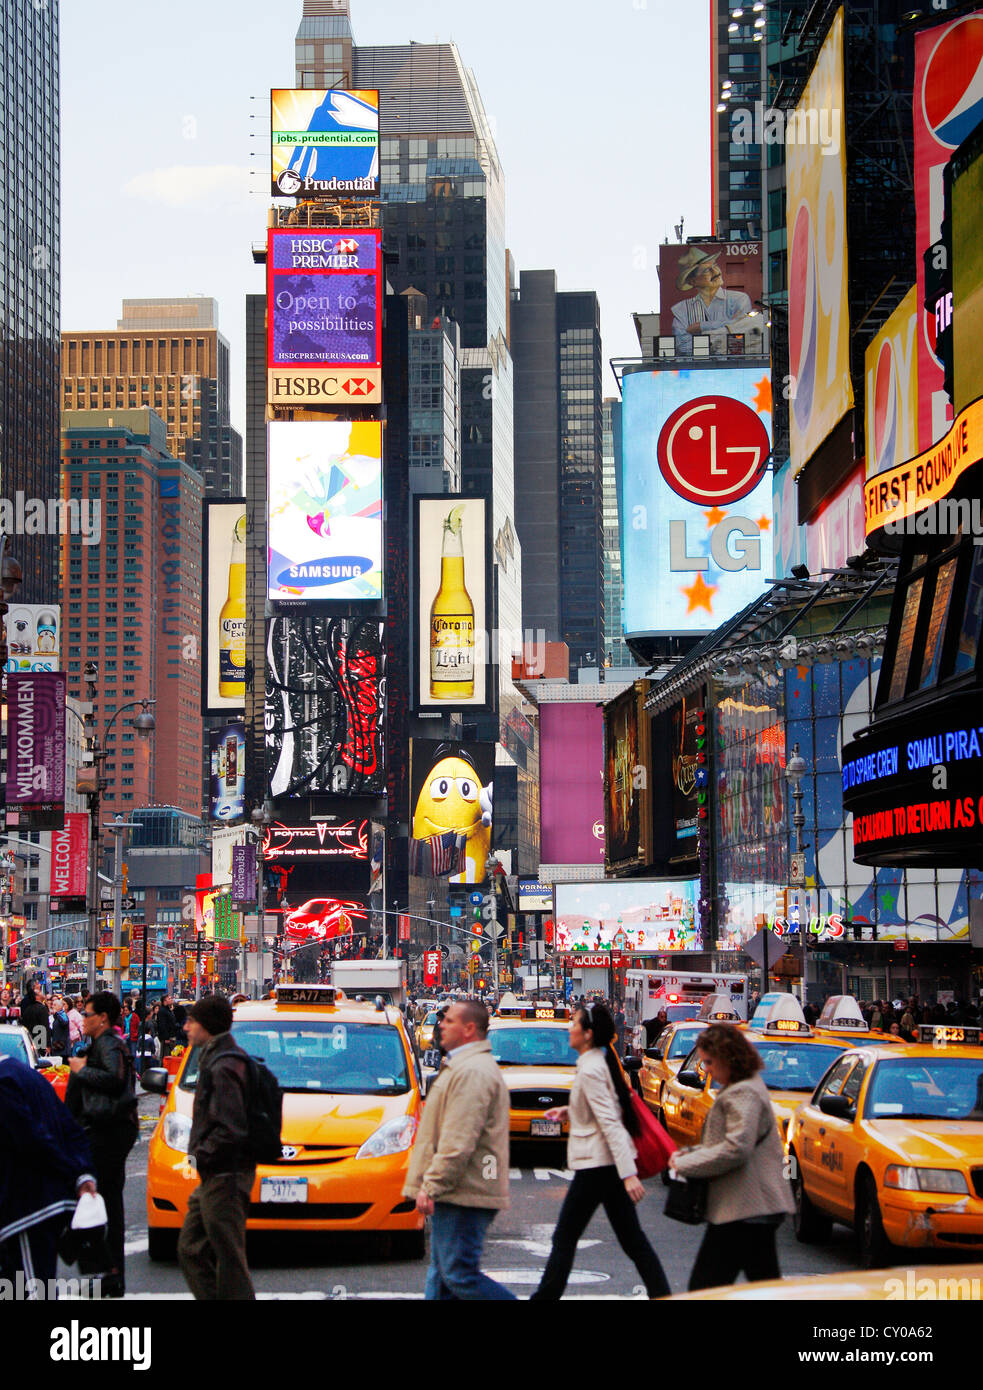 Times Square with advertising and tourists, New York City, New York, United States, North America - Stock Image